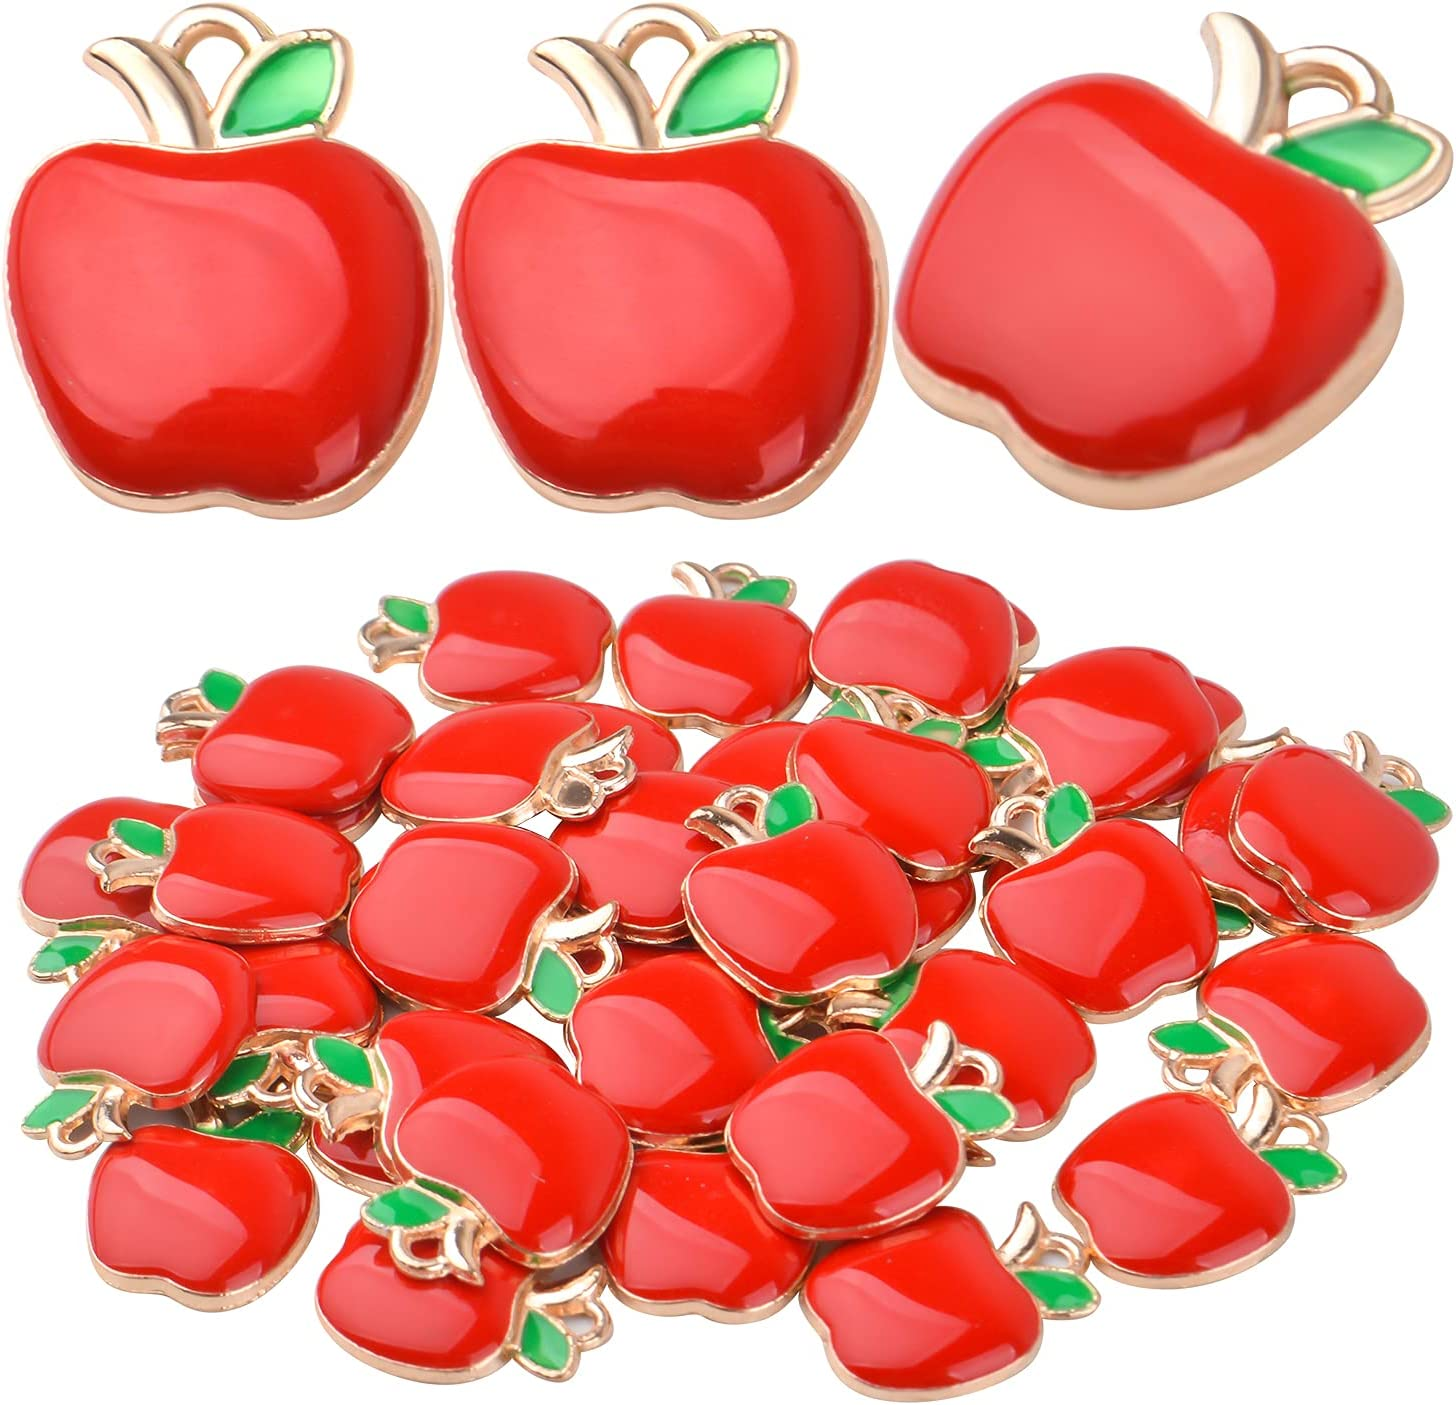 40pcs Red Apple Pendant Charms Enamel Fruit Dangle Charms Apple Bead Charms for DIY Jewelry Making Earrings Bracelets Necklace Crafts Finding Accessory